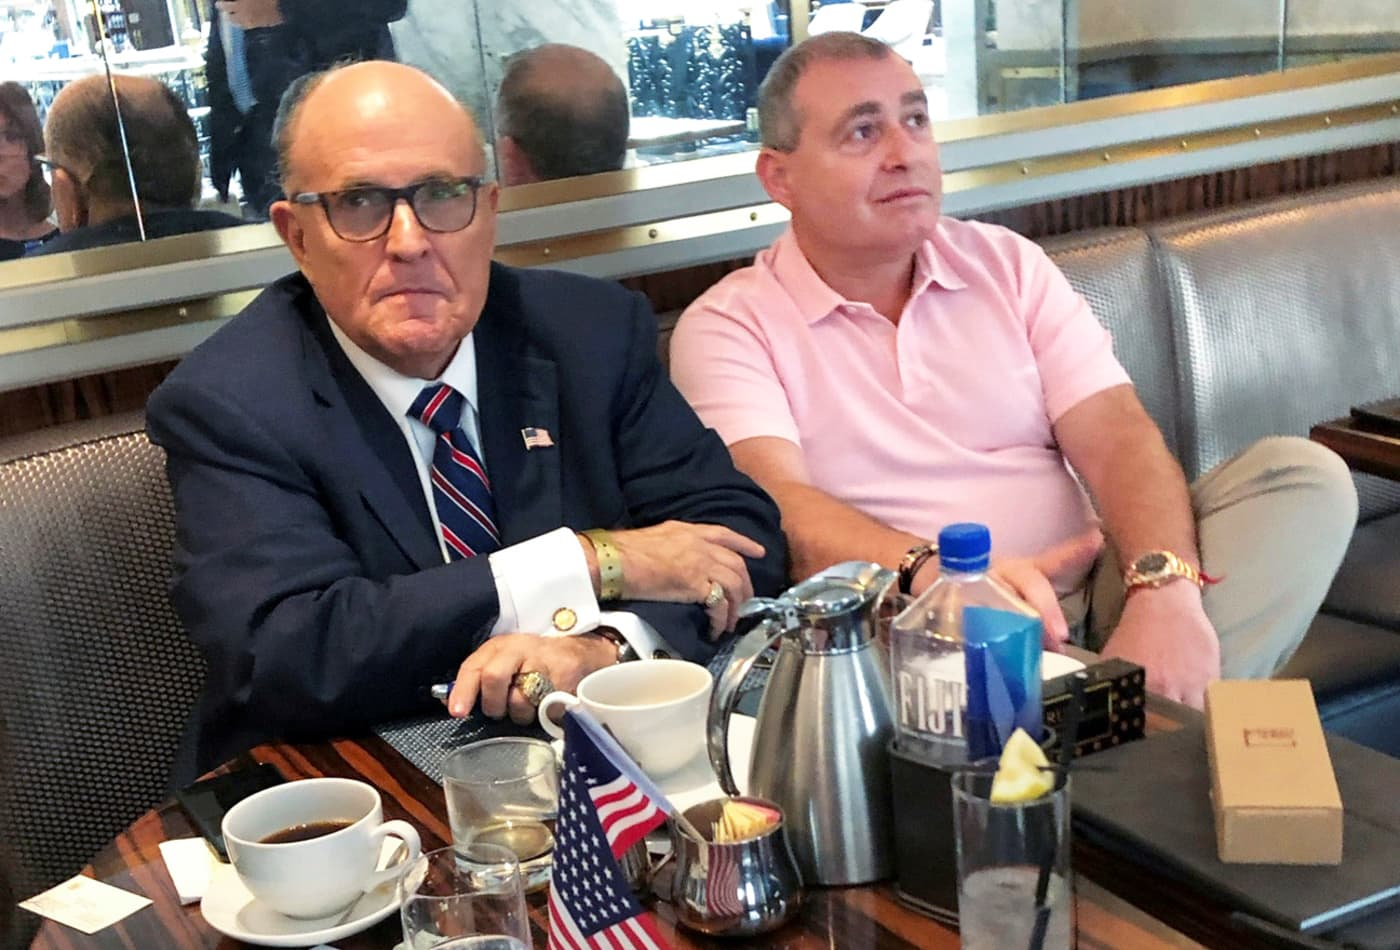 Giuliani associate Lev Parnas agrees to cooperate with House impeachment probe